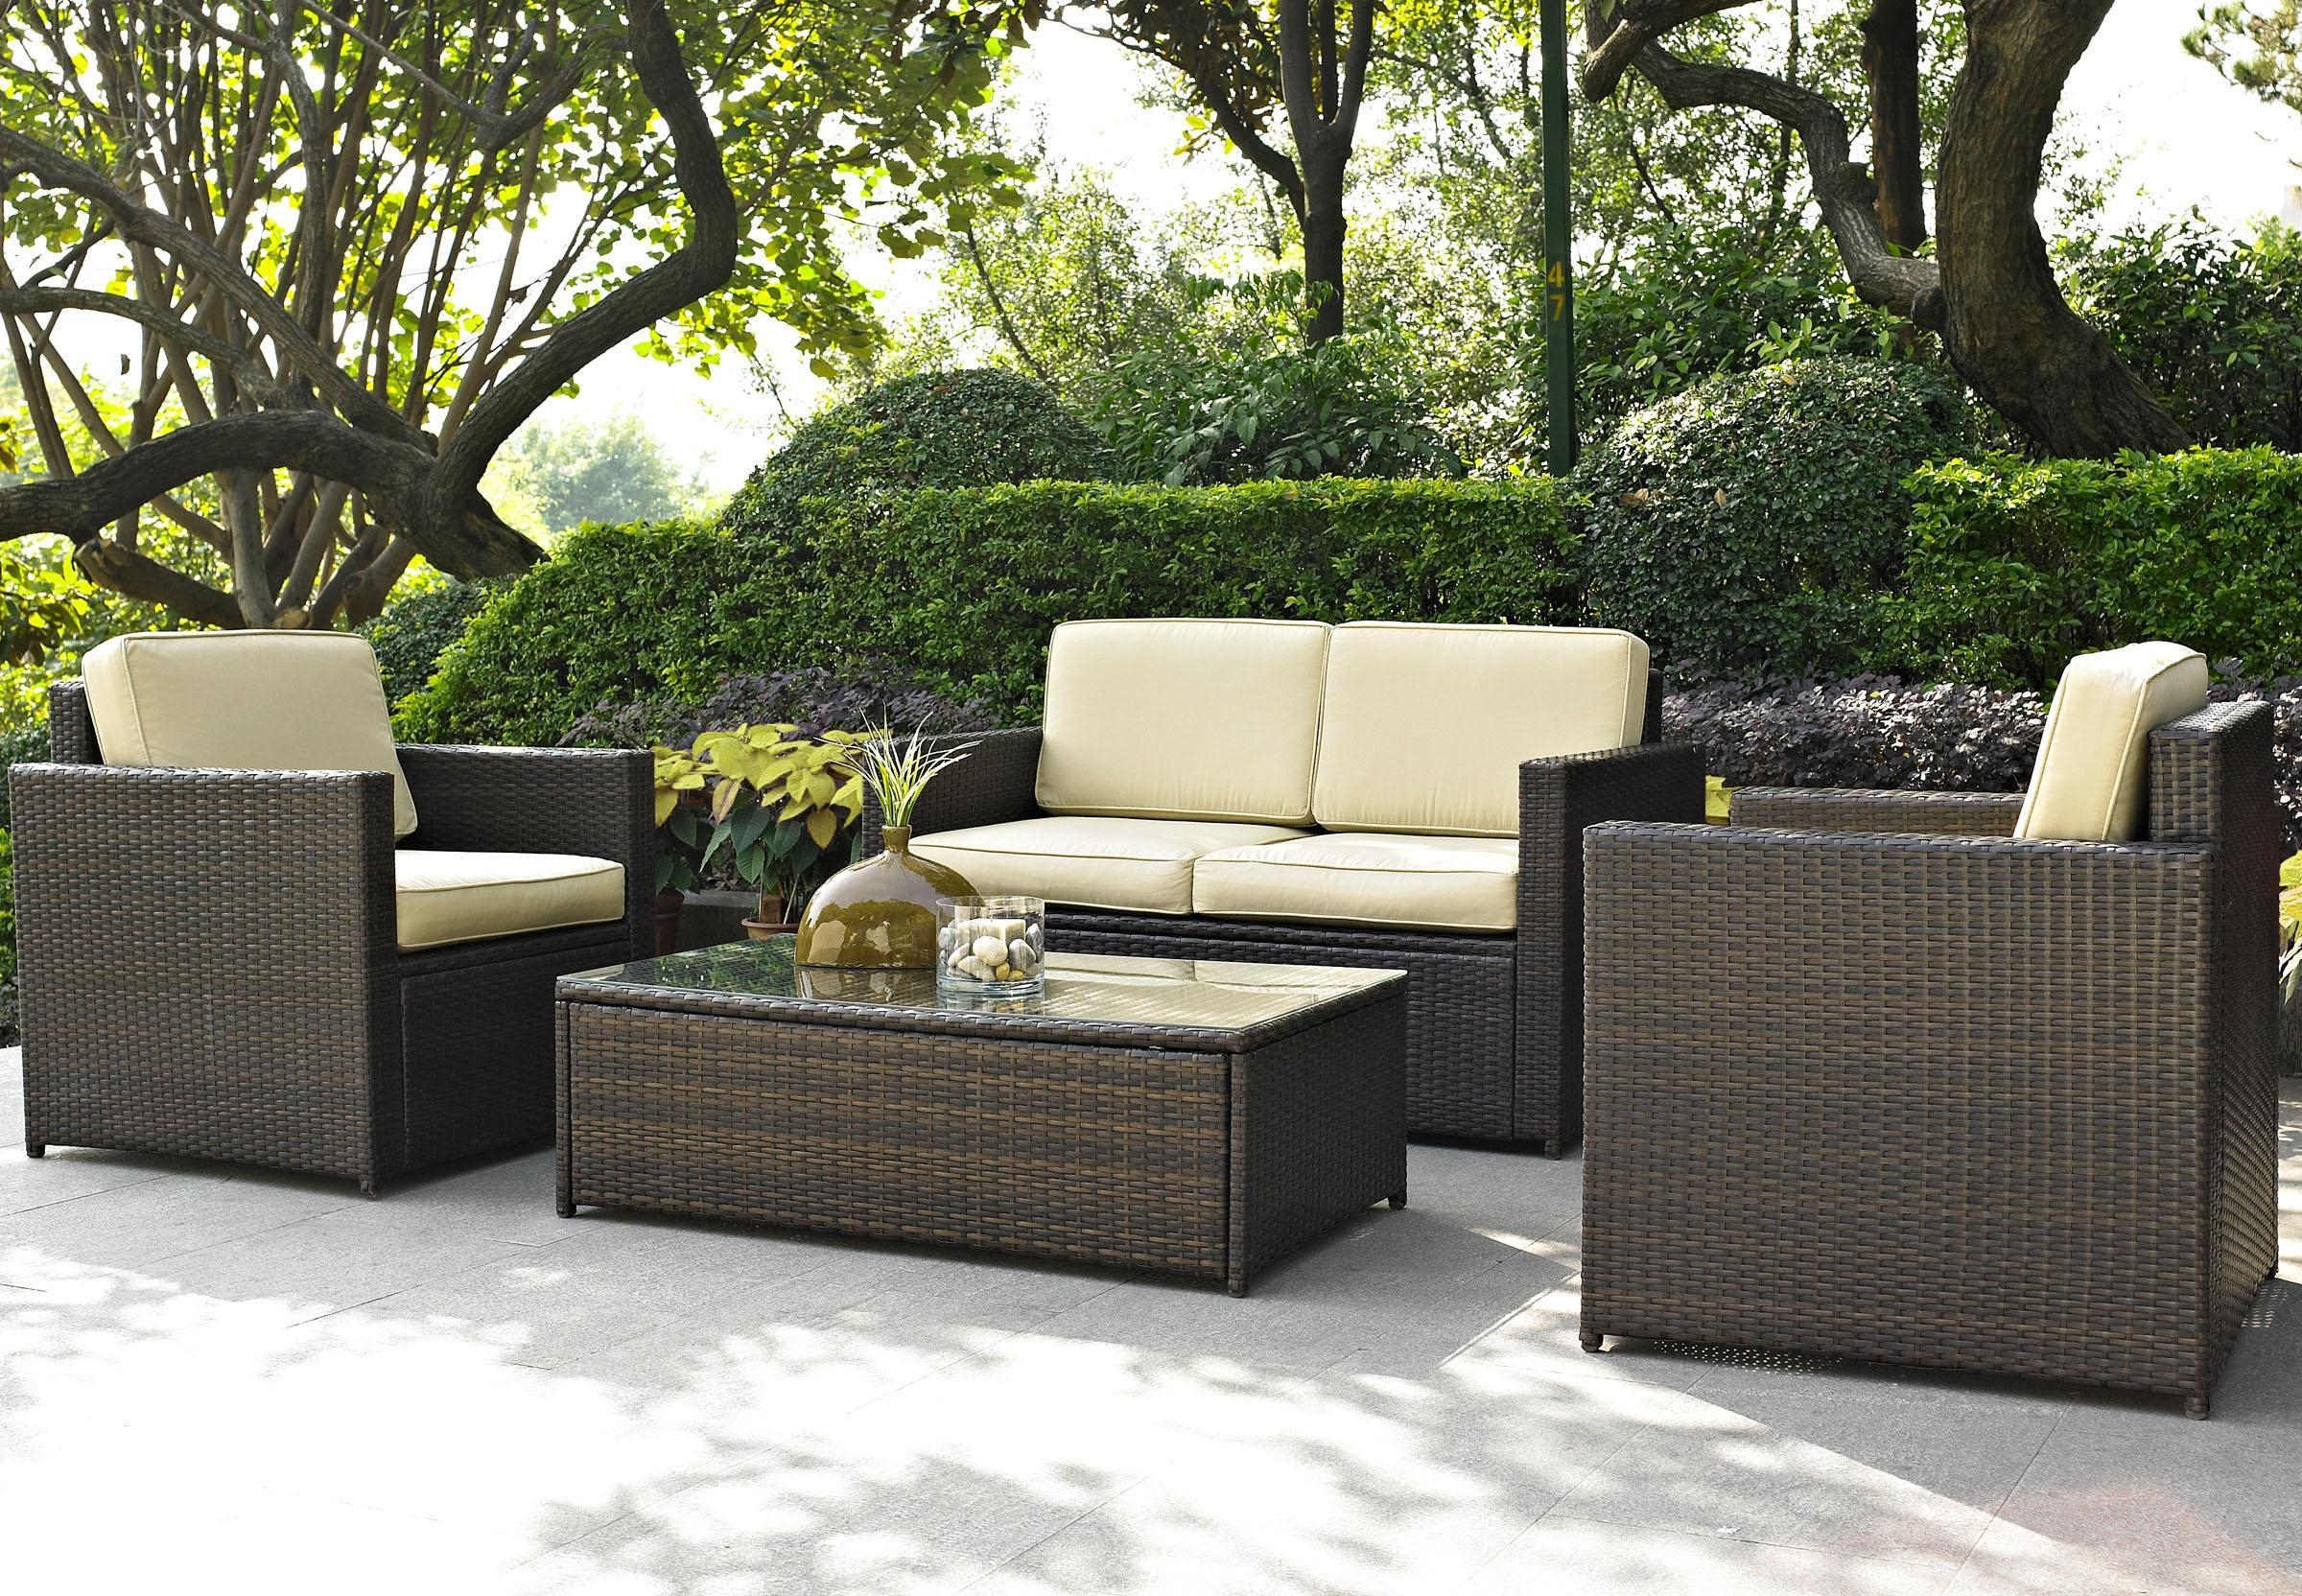 Fireplace: Wonderful Frontgate Outdoor Furniture For Patio Regarding Outdoor Sofas And Chairs (View 1 of 20)